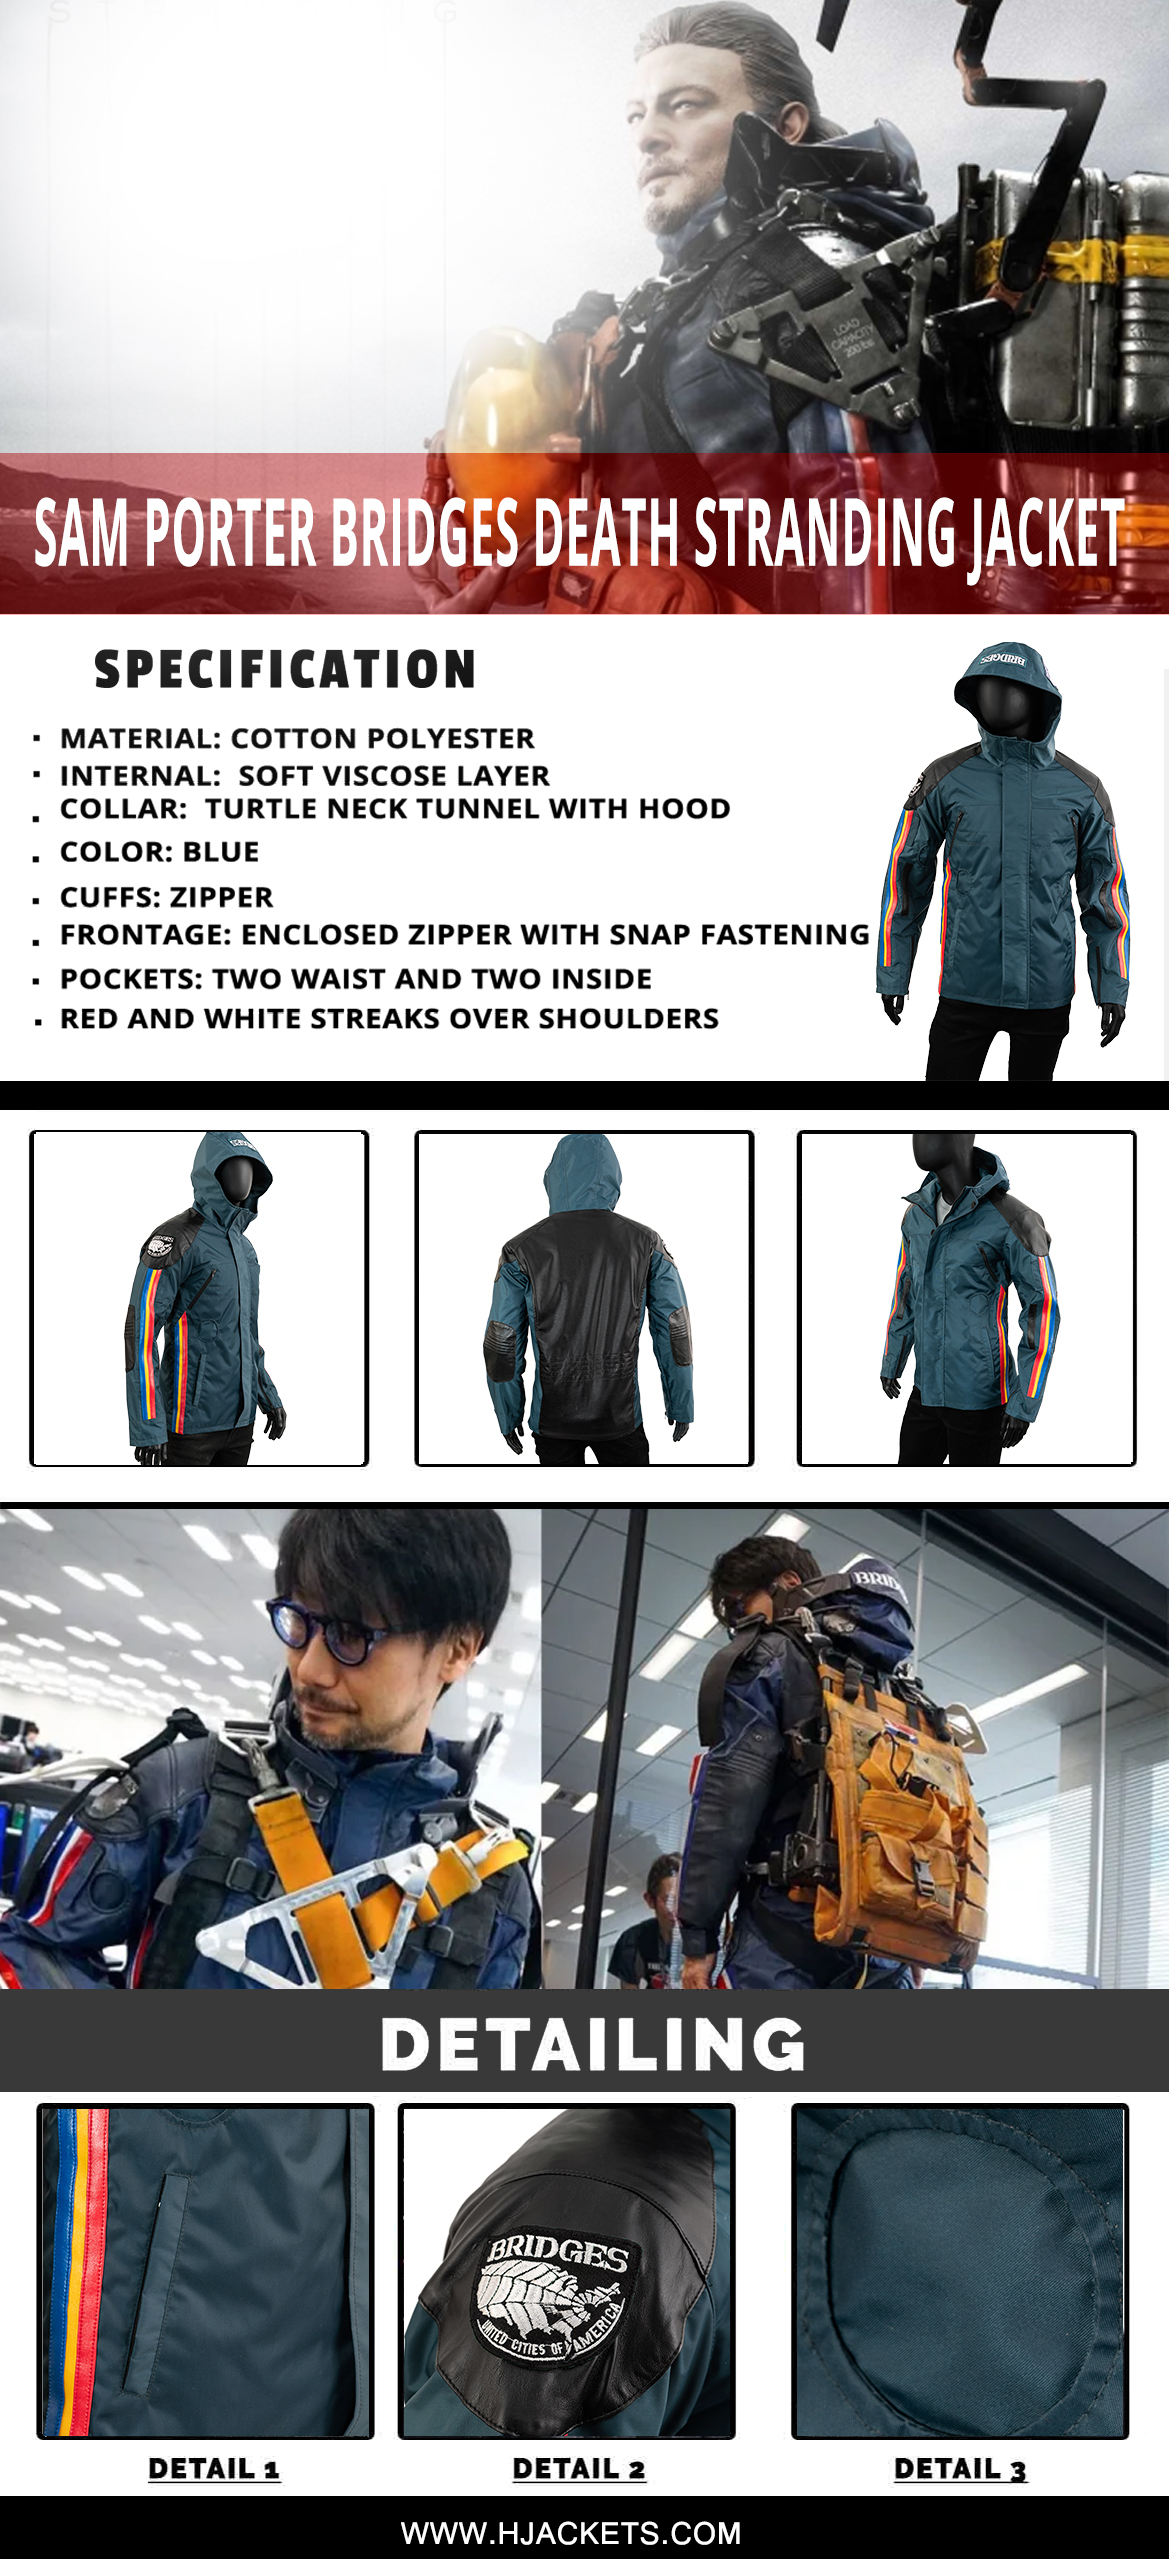 sam porter bridges death stranding jacket infographic